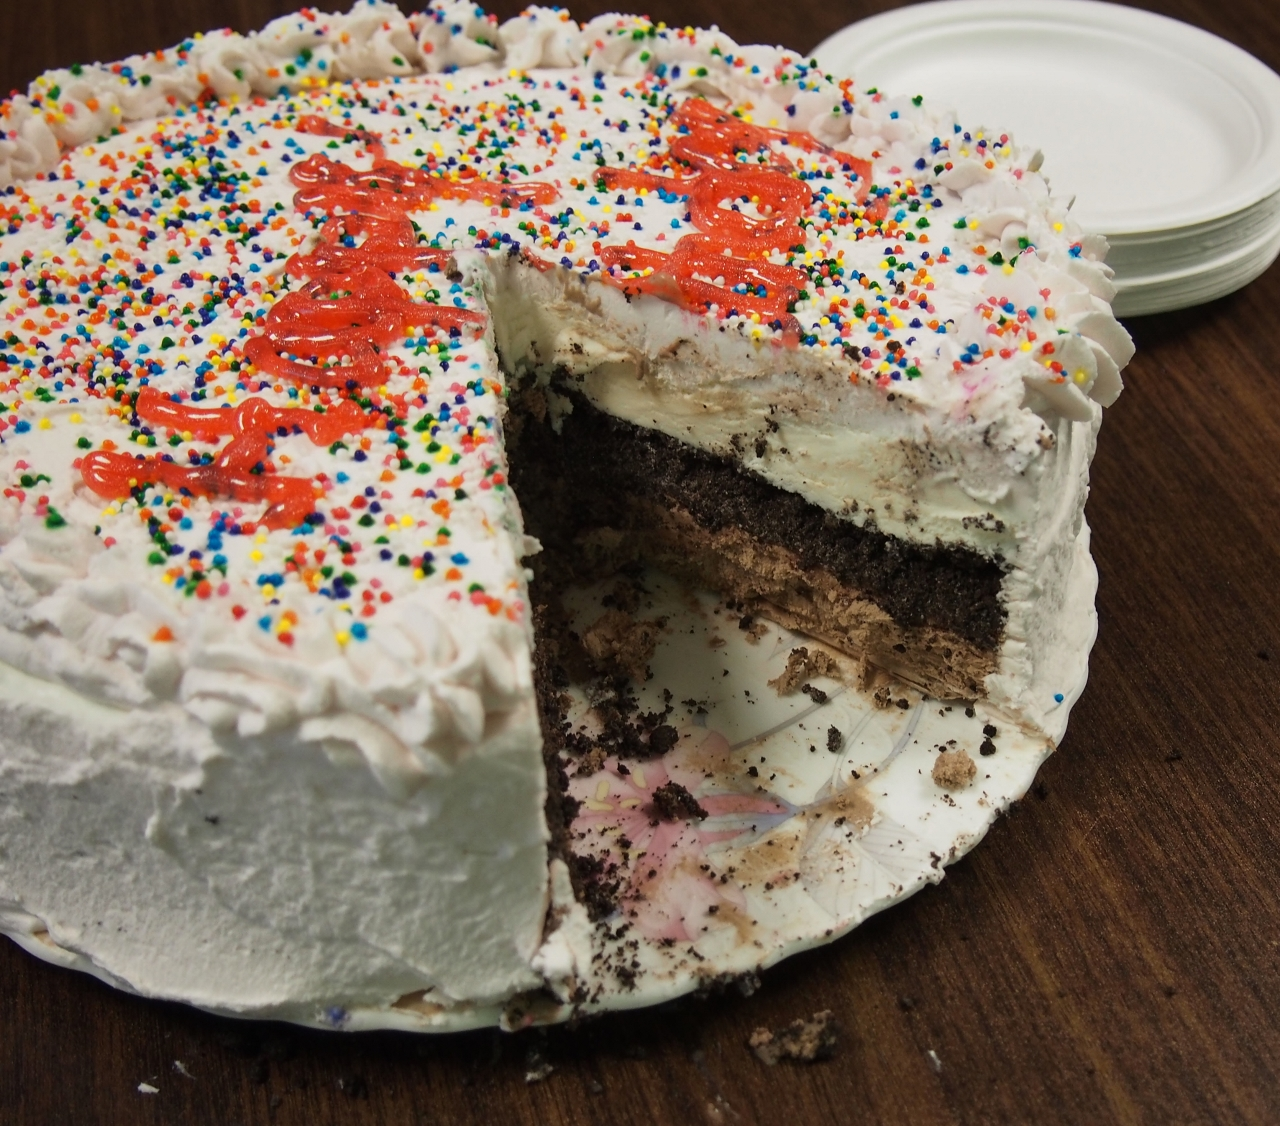 Does Ice Cream Cake Have Gluten In It